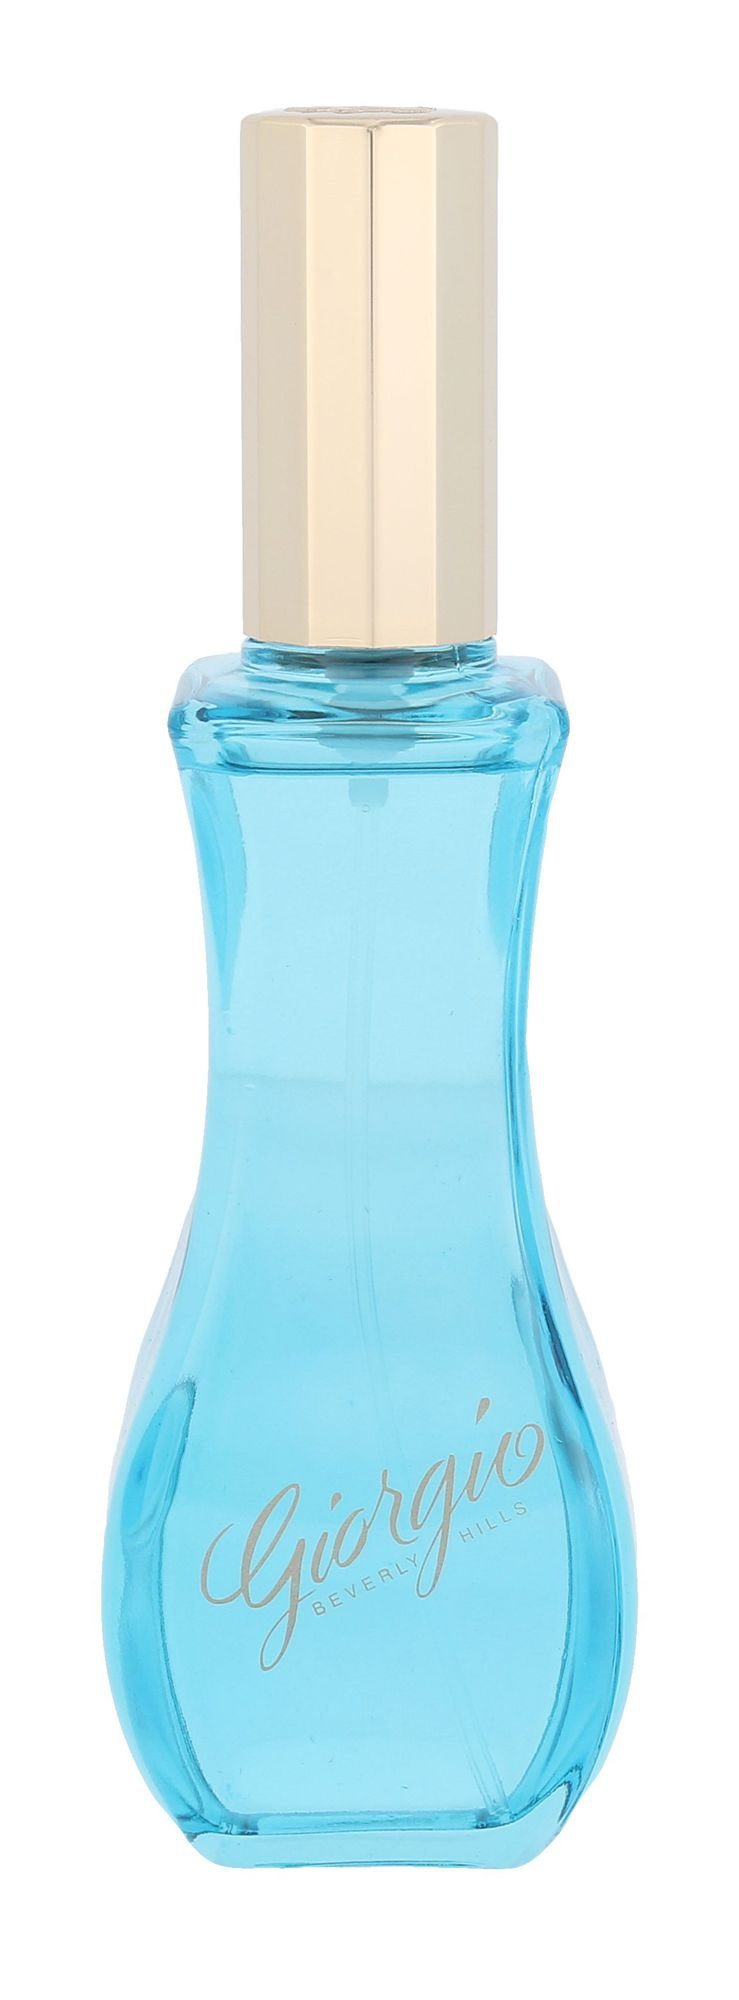 Giorgio Beverly Hills Blue, edt 90ml